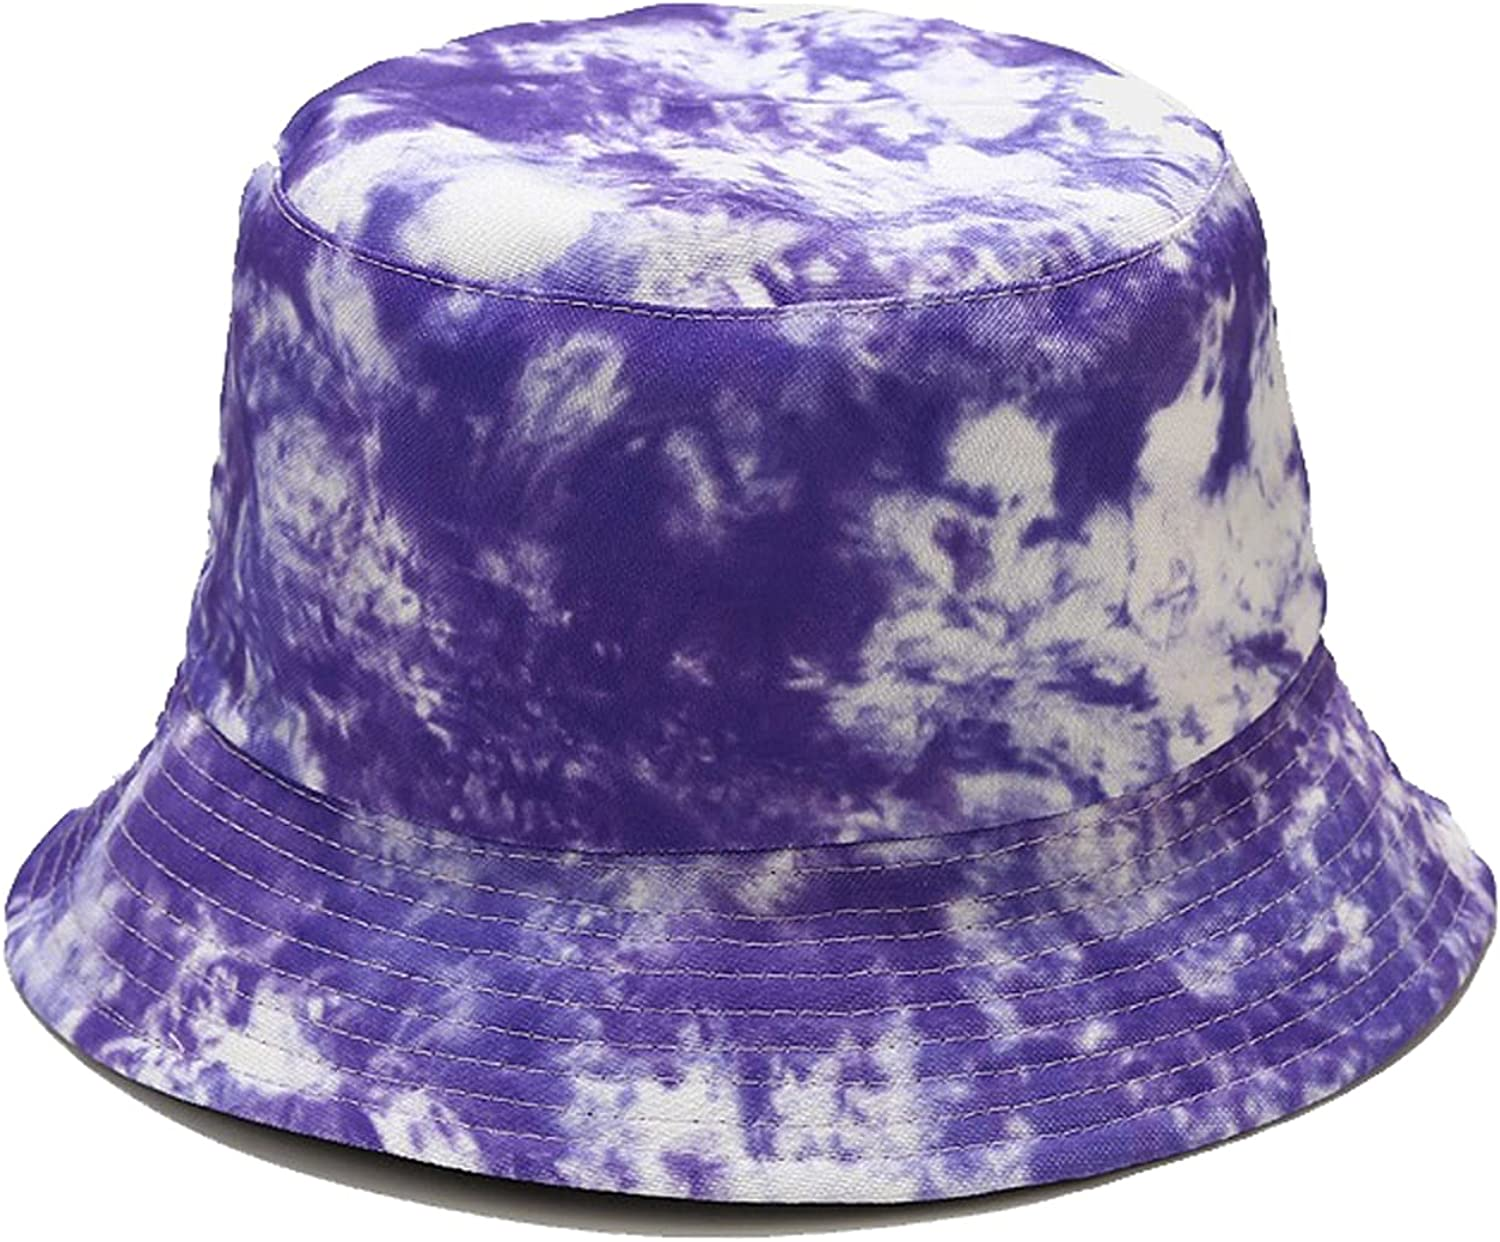 HMYLI Double-Sided Color Printing Fisherman Hat Foldable Beach Leisure Outdoor Travel Vacation Unisex